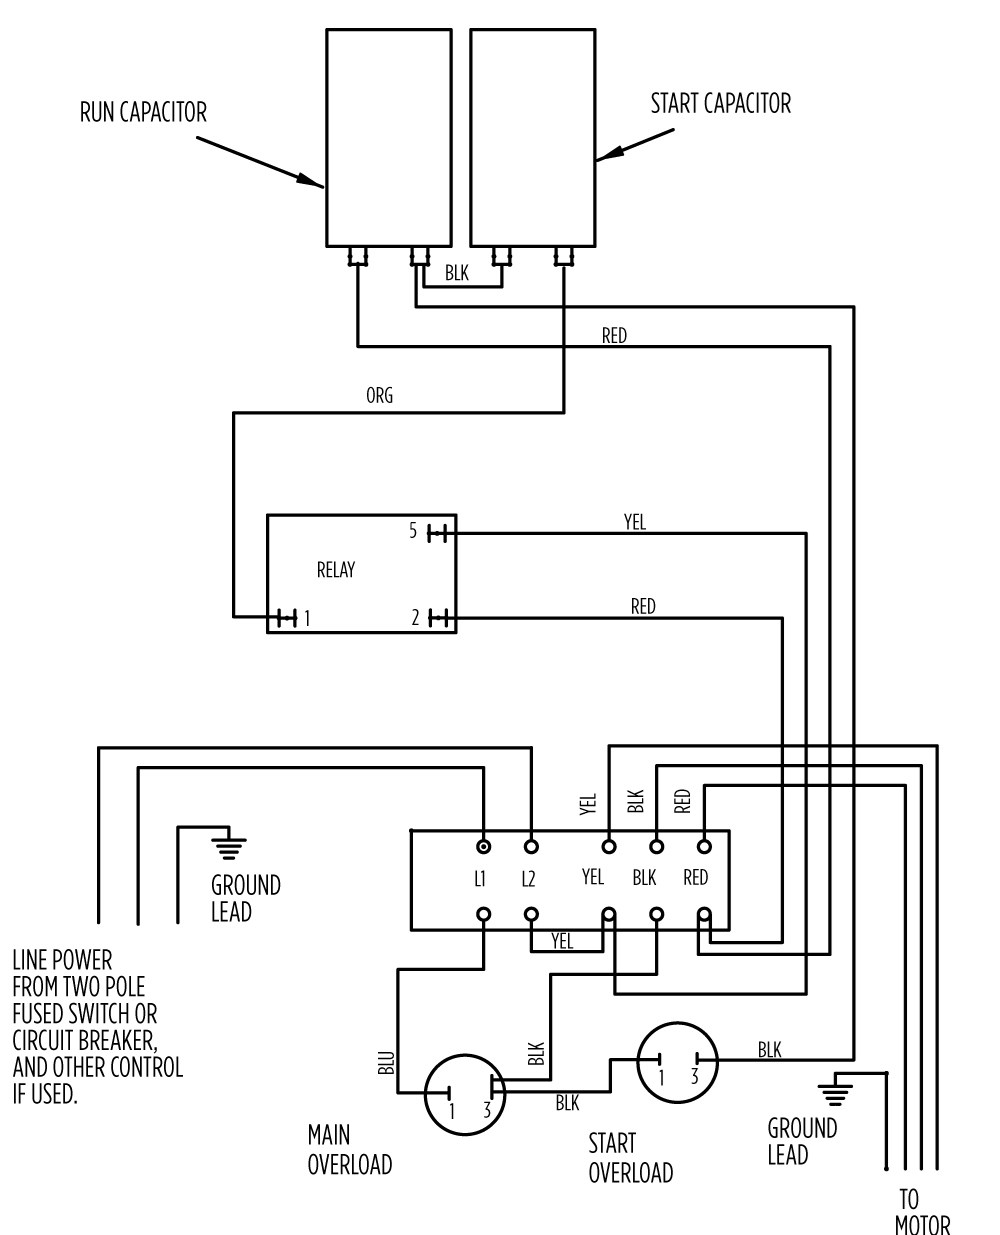 2 hp standard 282 301 8110_aim gallery?format=jpg&quality=80 aim manual page 55 single phase motors and controls motor 220V Well Pump Wiring Diagram at readyjetset.co